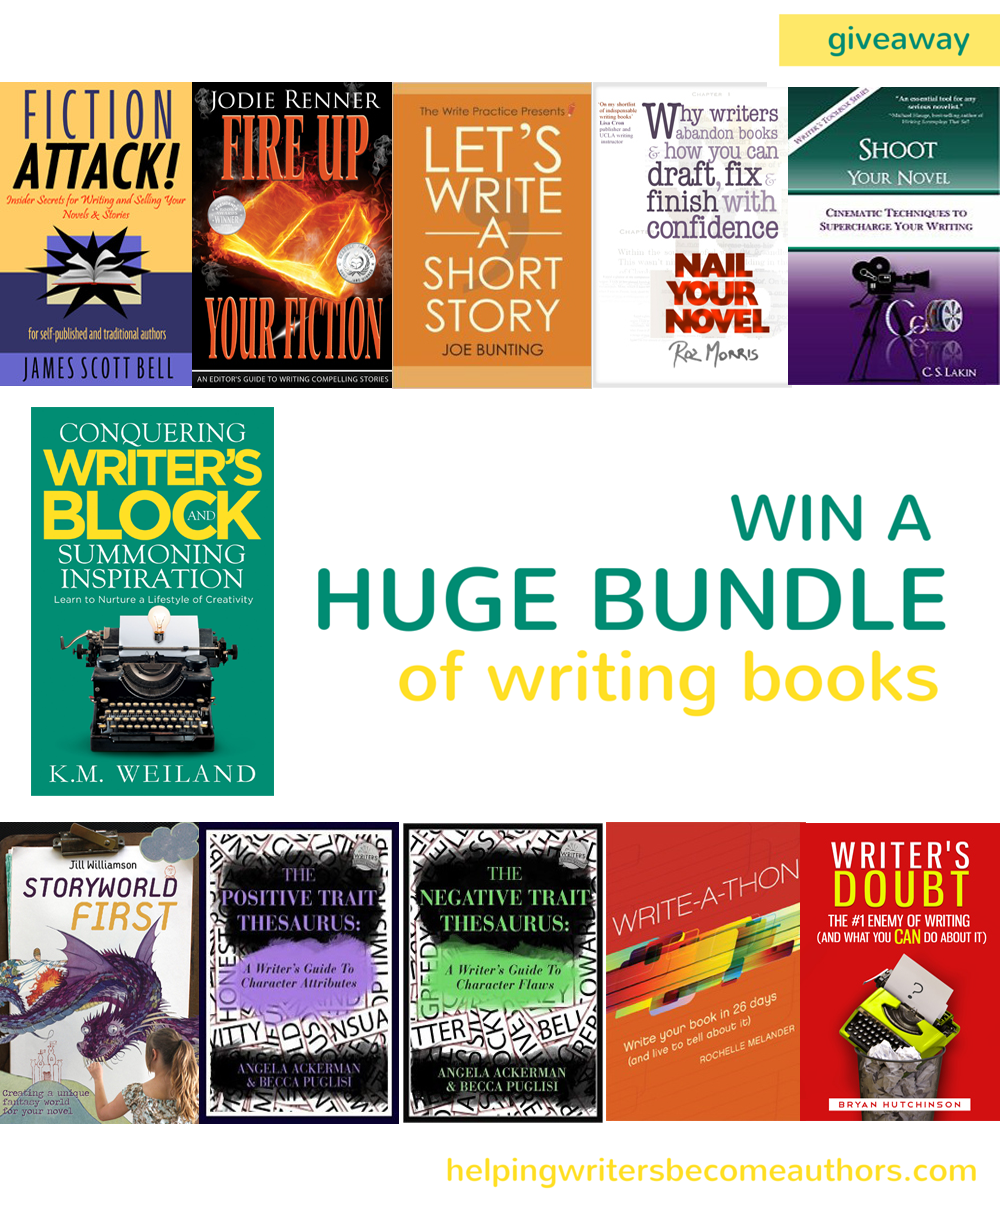 Win a Huge Bundle of Writing Books